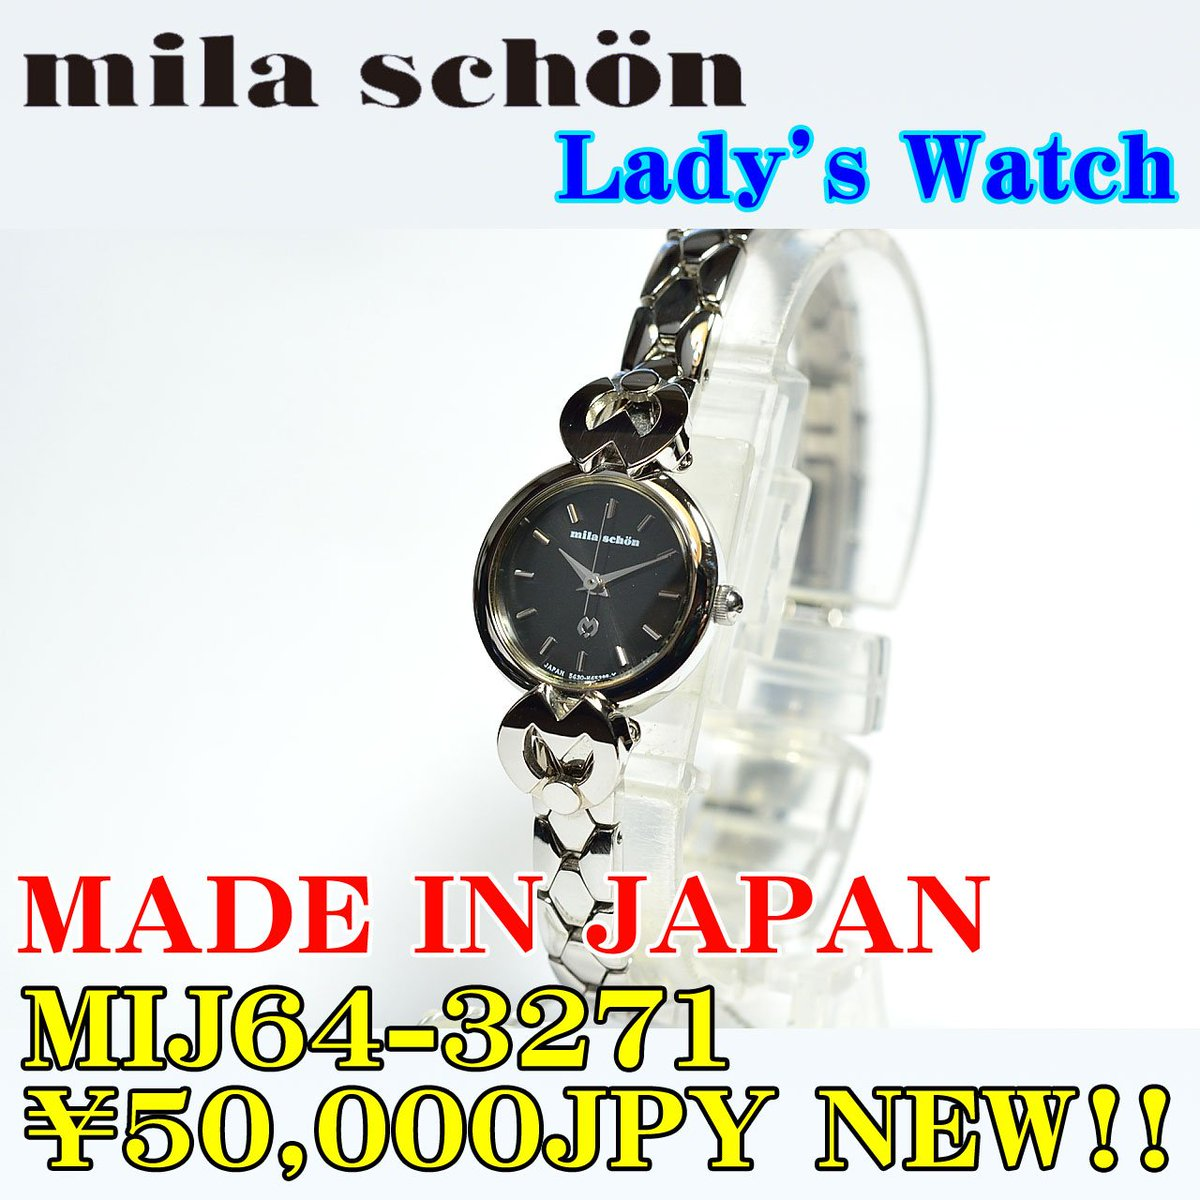 mila schon LADY'S QUARTZ WATCH MIJ64-3271 50,000JPY NEW FREE International Shipping #ebay  #ujiie_japan  Popular ladies watch It became the last 1PCS. #citizen #mila_schon #japan #mij64_3271 #last1pcs